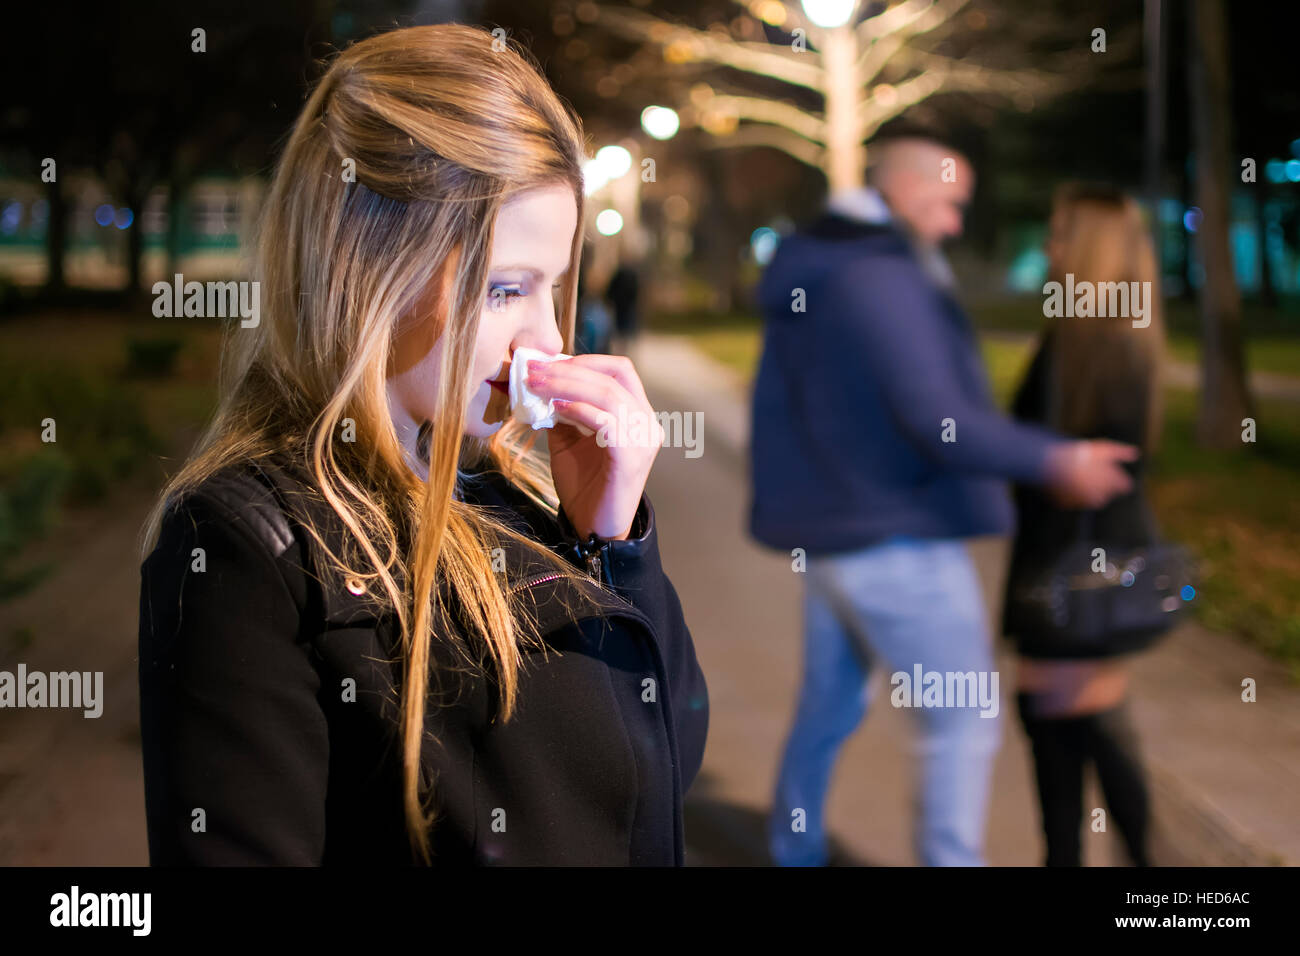 Young Woman Crying in the Night . Betrayal and Infidelity concept. Couple Breaking Up. - Stock Image